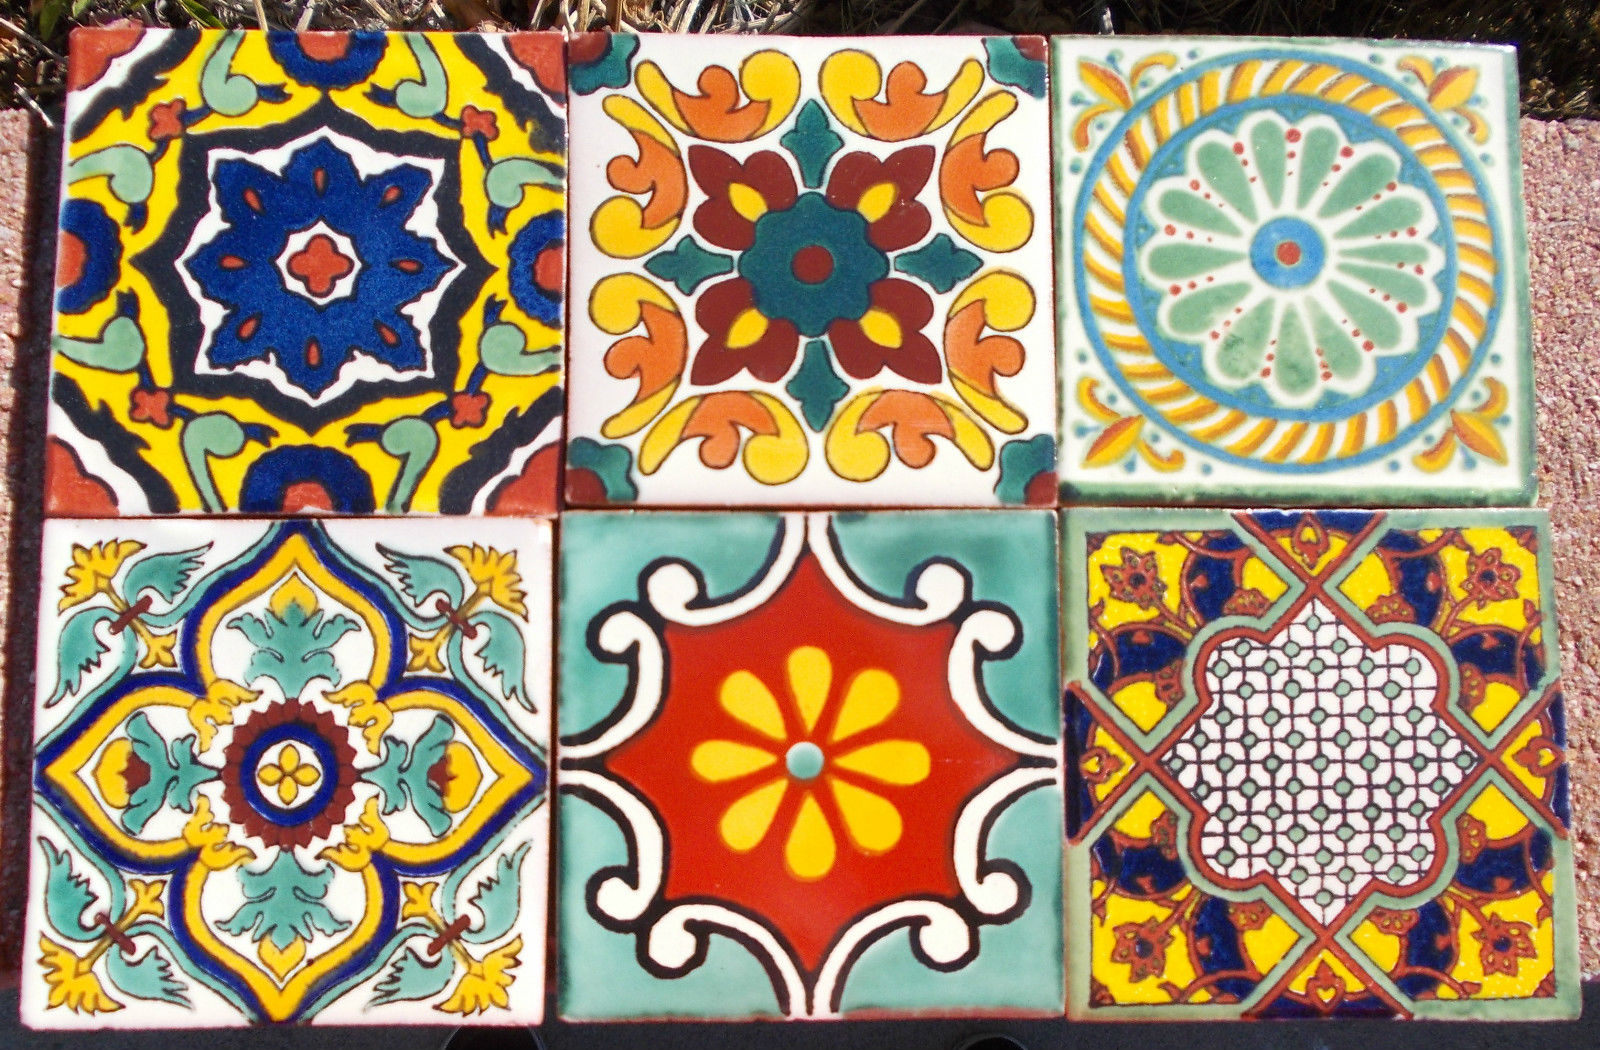 decorative floor tile 1 hand painted mexican tile - Decorative Wall Tiles